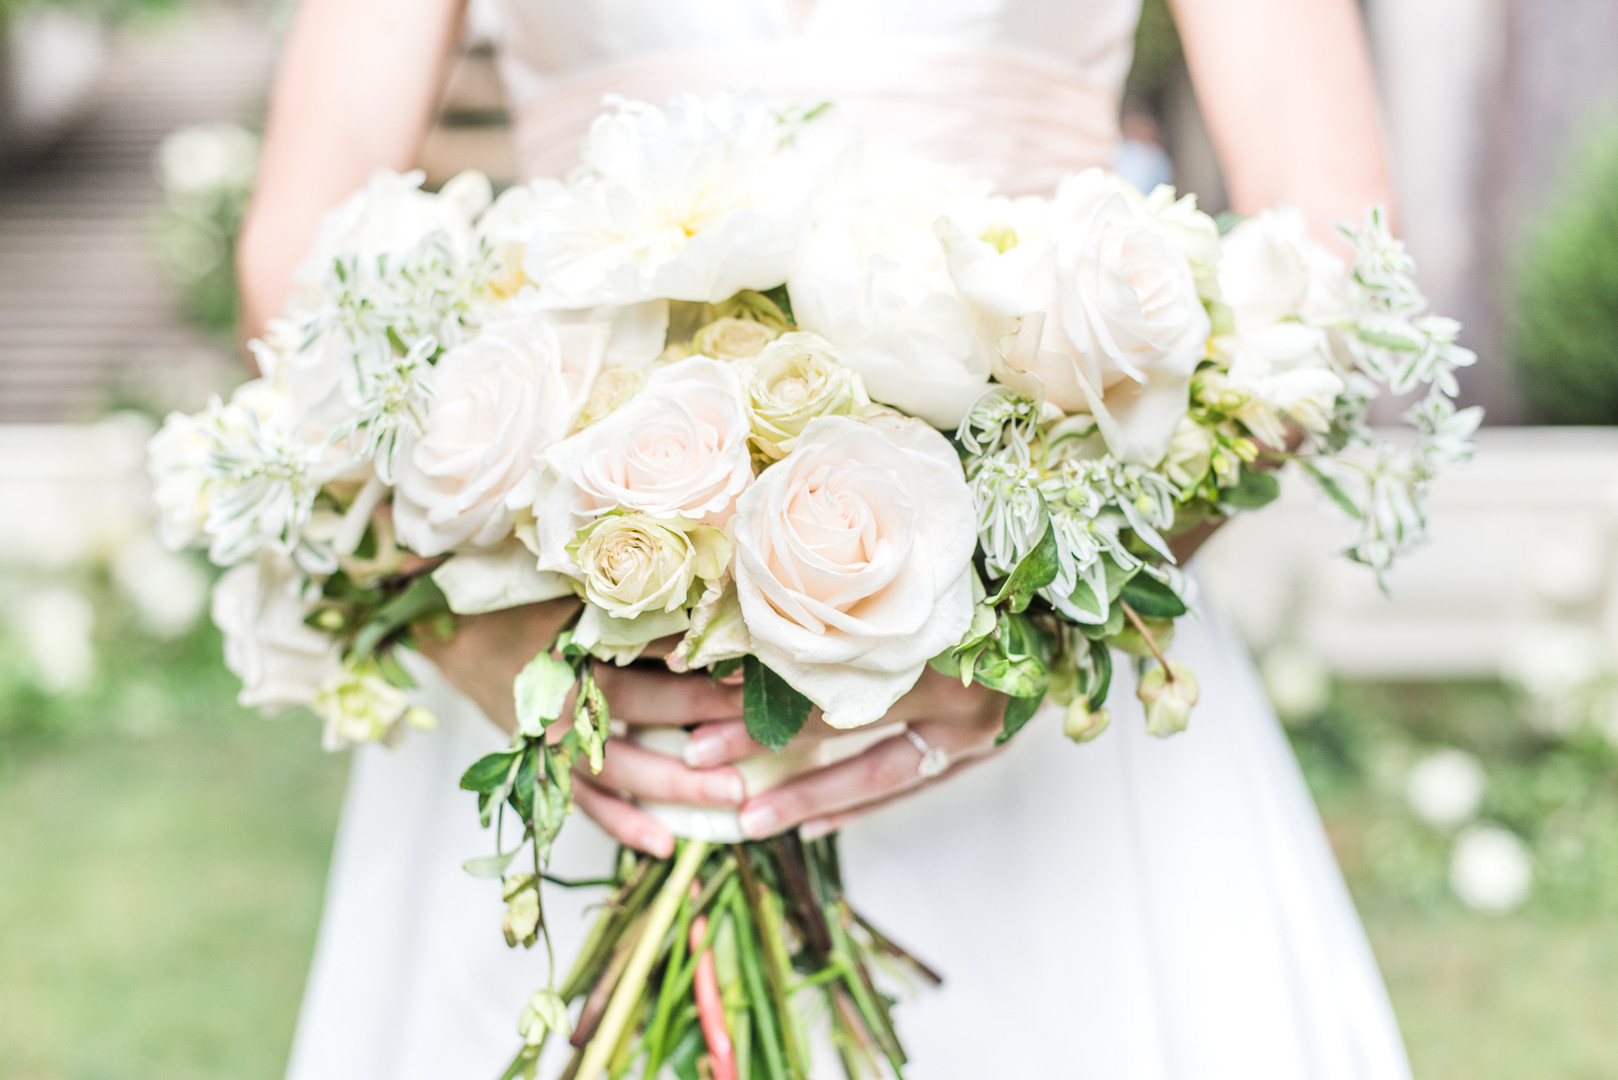 bride holing a large rose bouquet